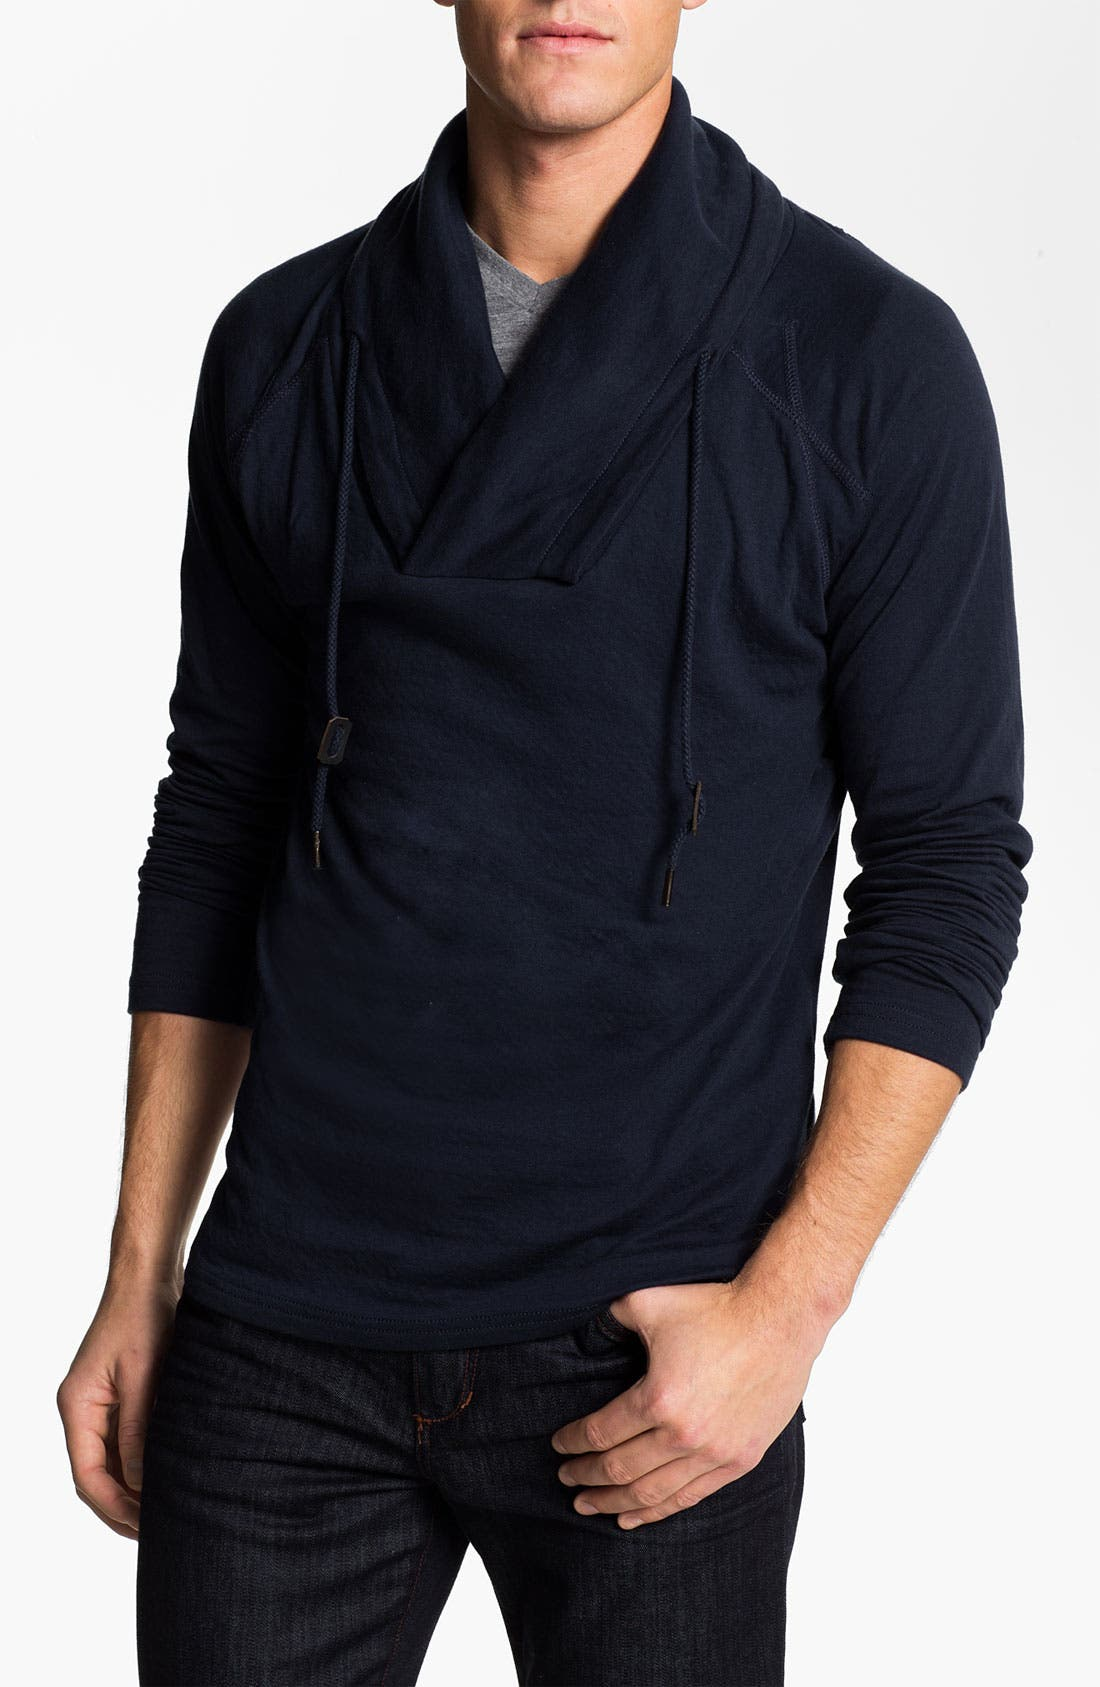 Alternate Image 1 Selected - J.C. Rags Cowl Neck Jersey Cotton Pullover